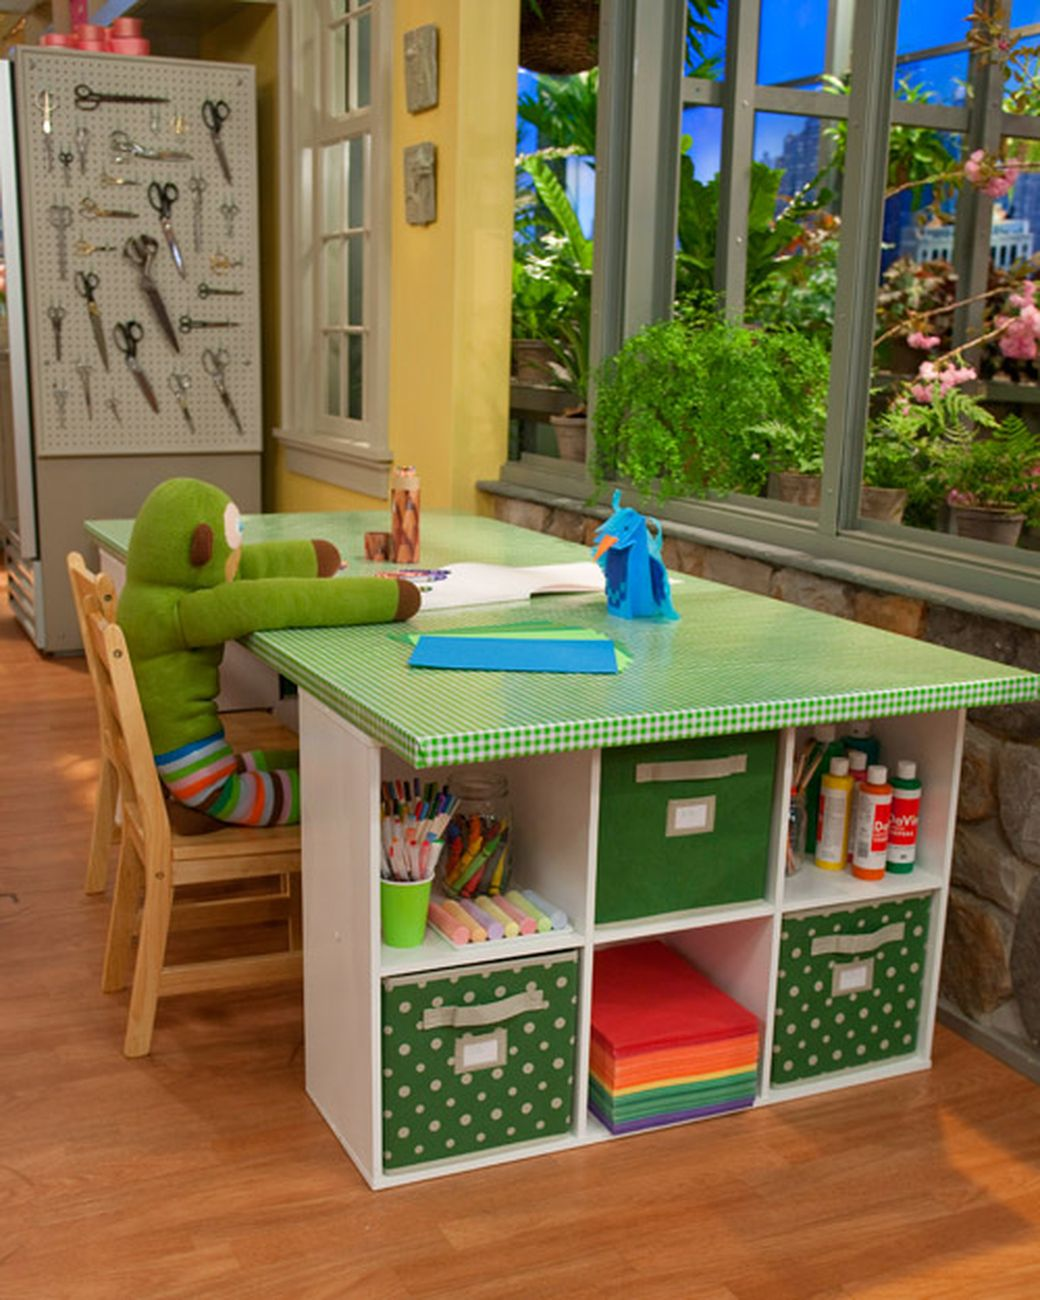 Colorful Crafting Table Kids Craft Tables Kids Art Table Craft Table